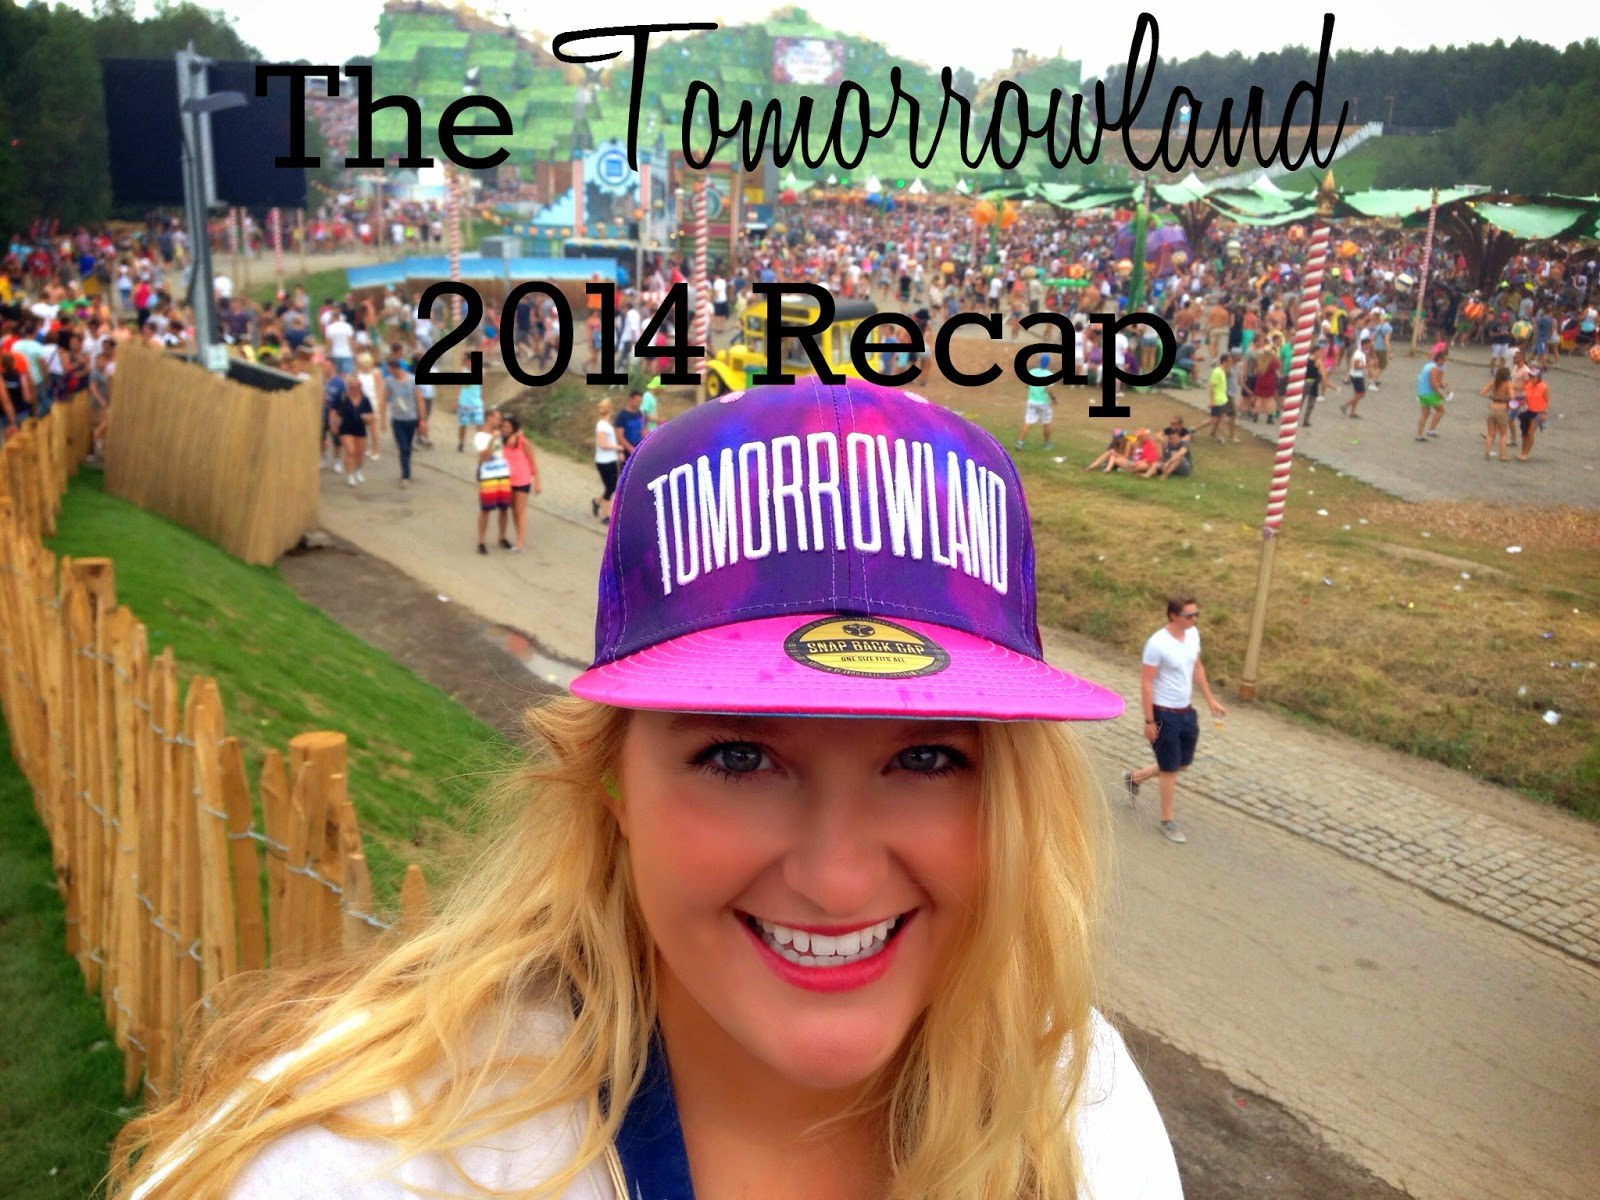 The Tomorrowland 2014 Recap